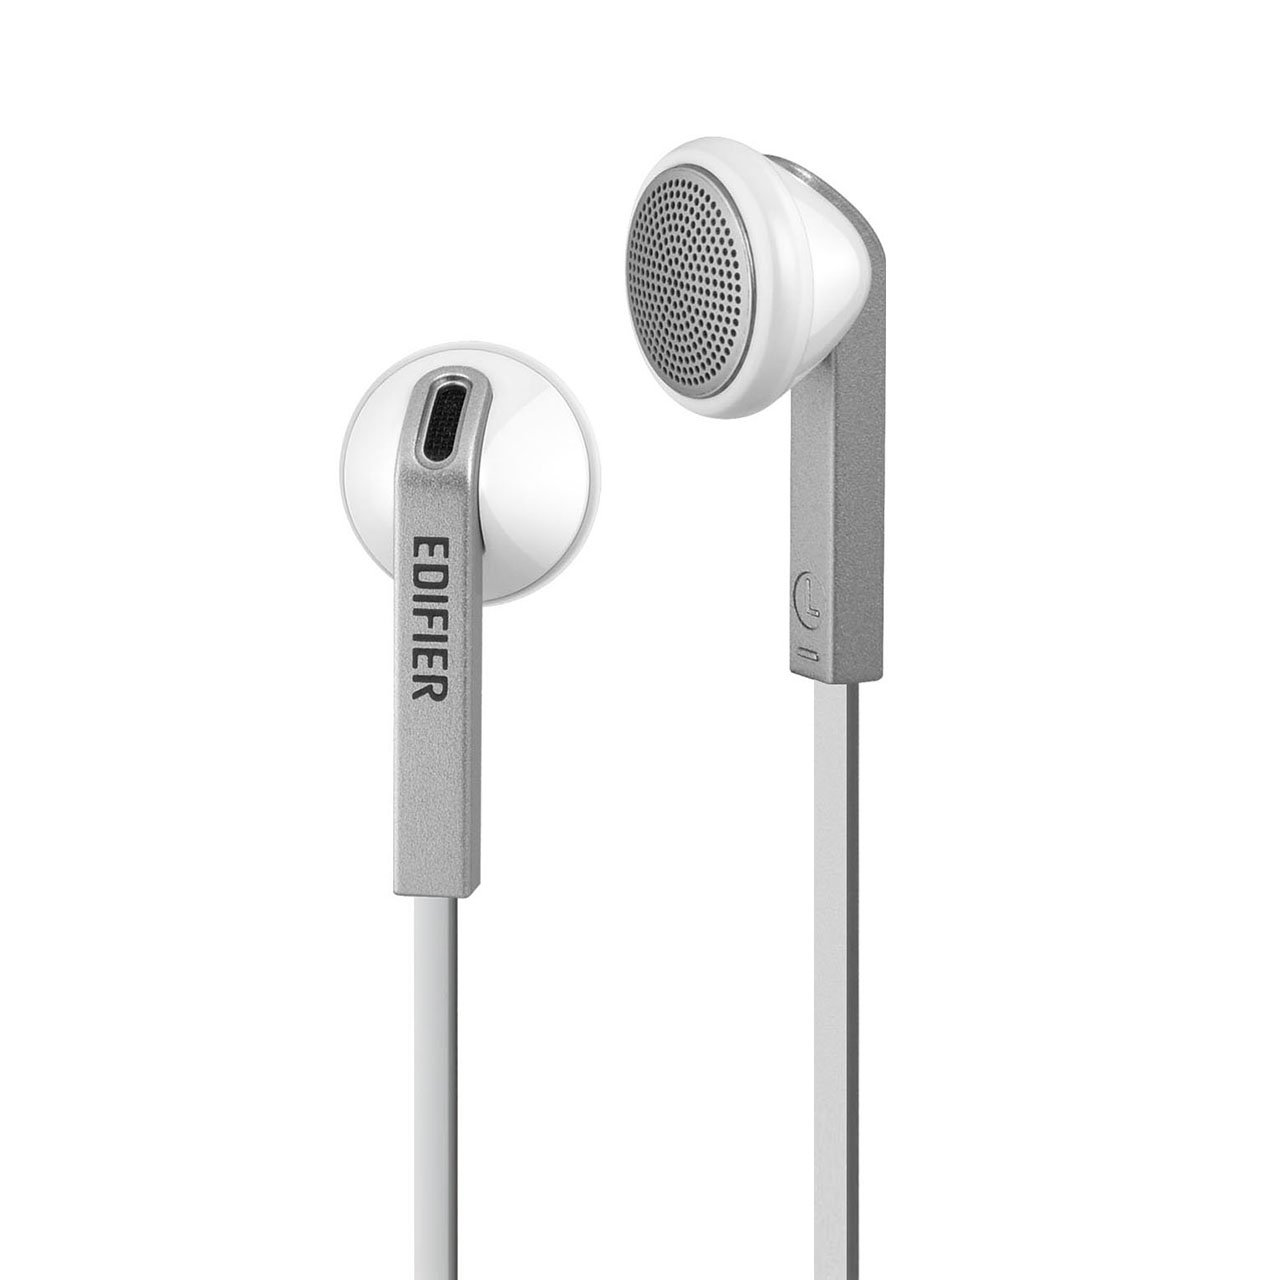 Edifier H190 Premium Earbuds - Classic Style Earbud Headphones - White Earphones with Non-tangle Wire by Edifier